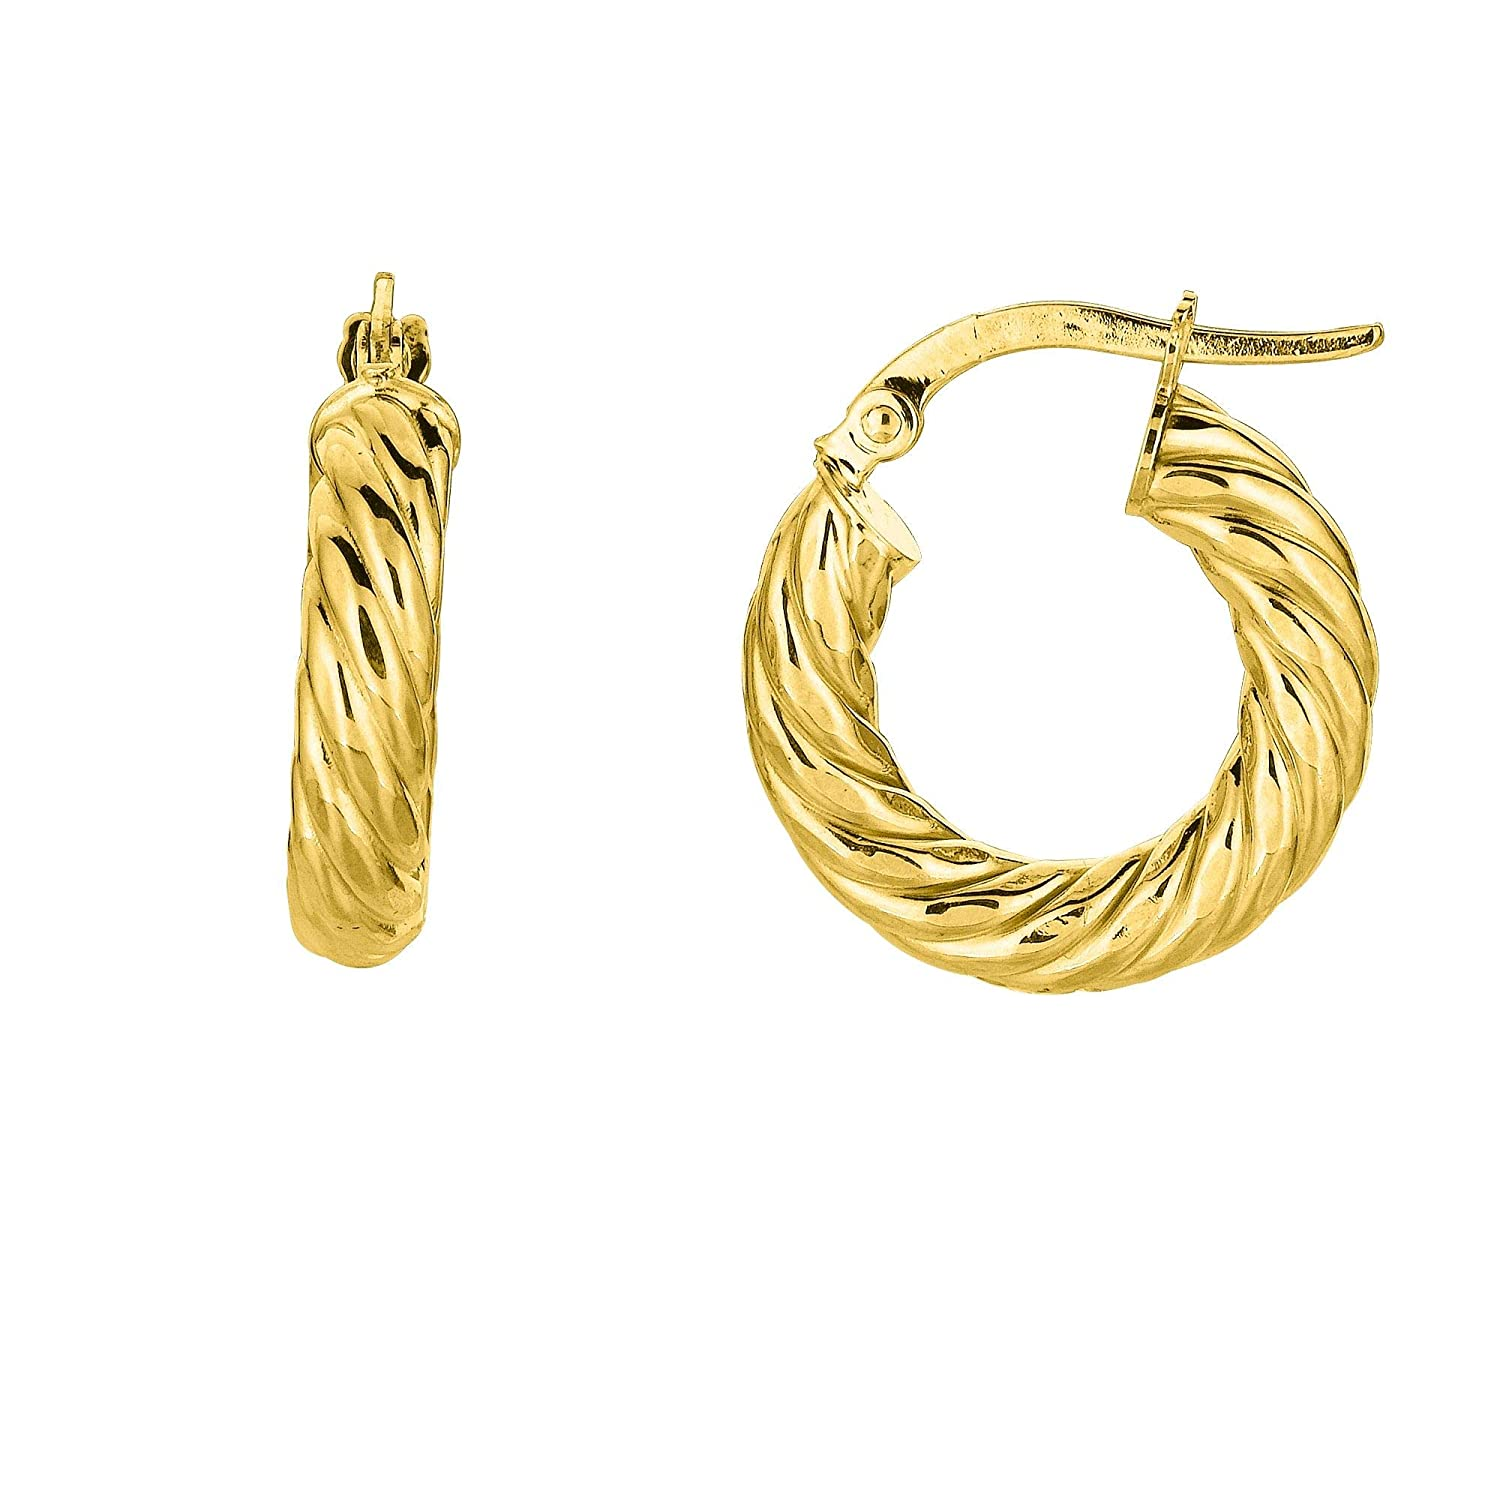 14K Yellow Gold 4x10mm Shiny Round Tube Twists Hoop Earrings with Hinged by IcedTime